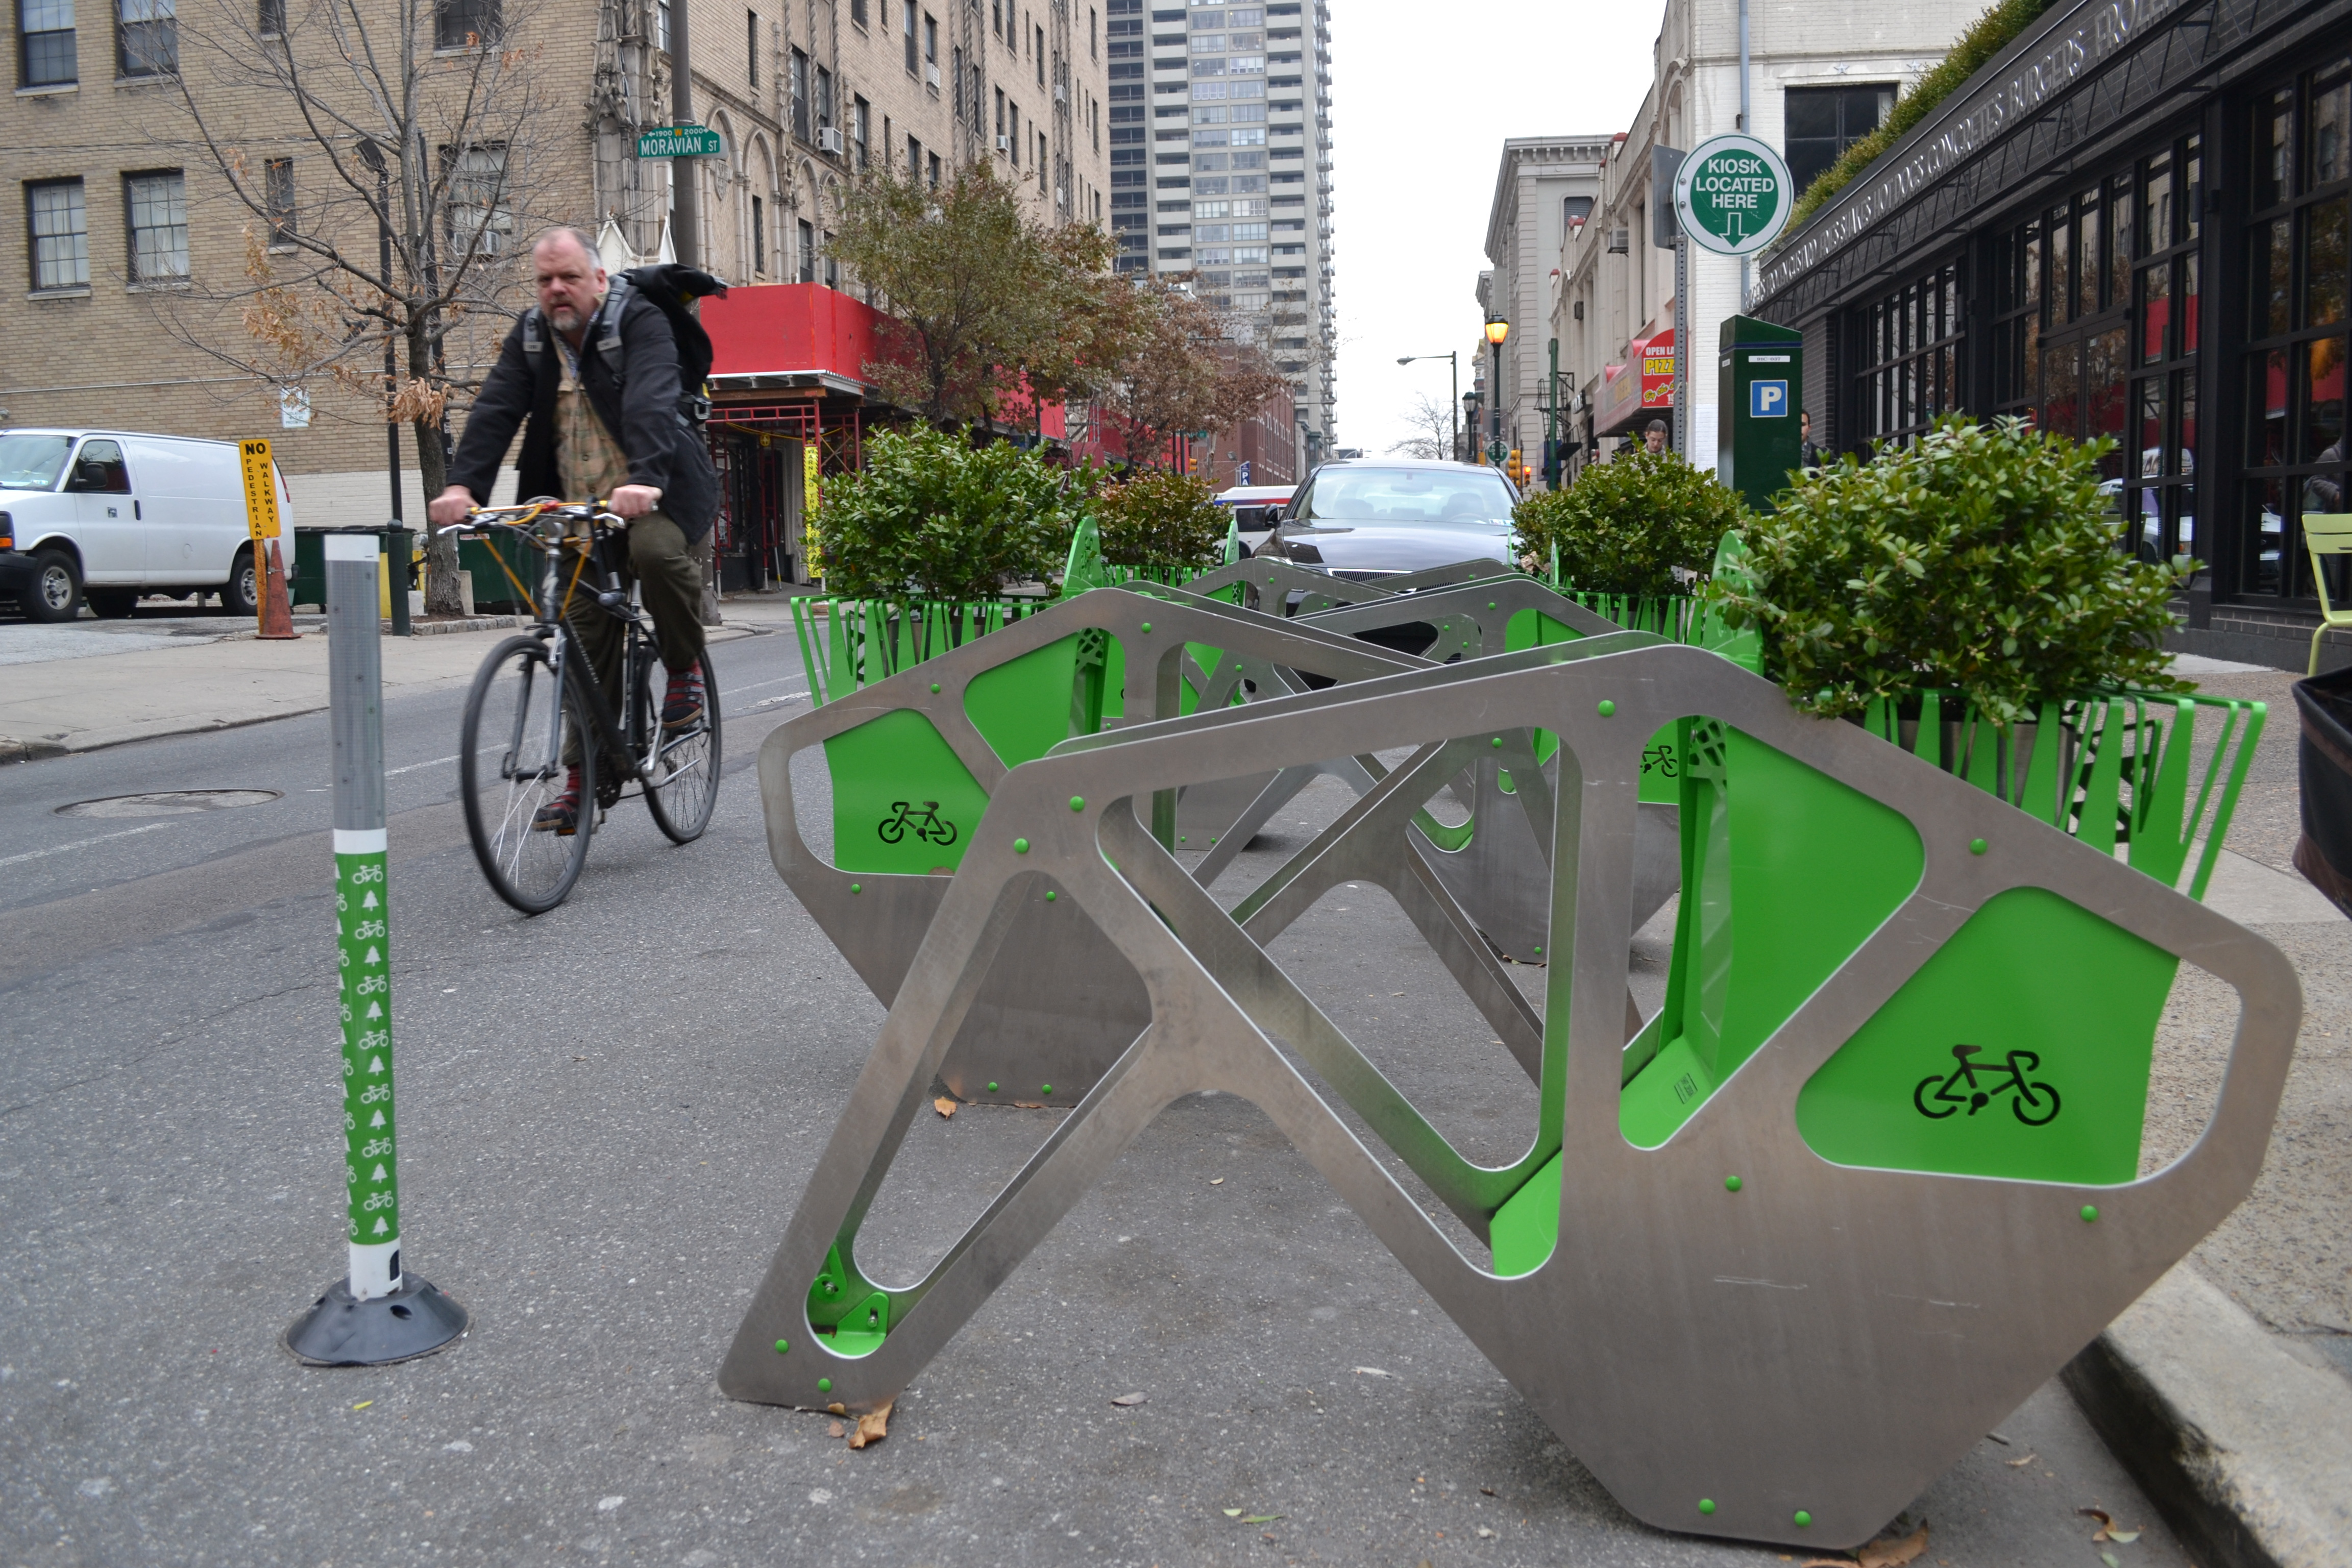 Shake Shack bought and installed a bike corral for its Center City location.